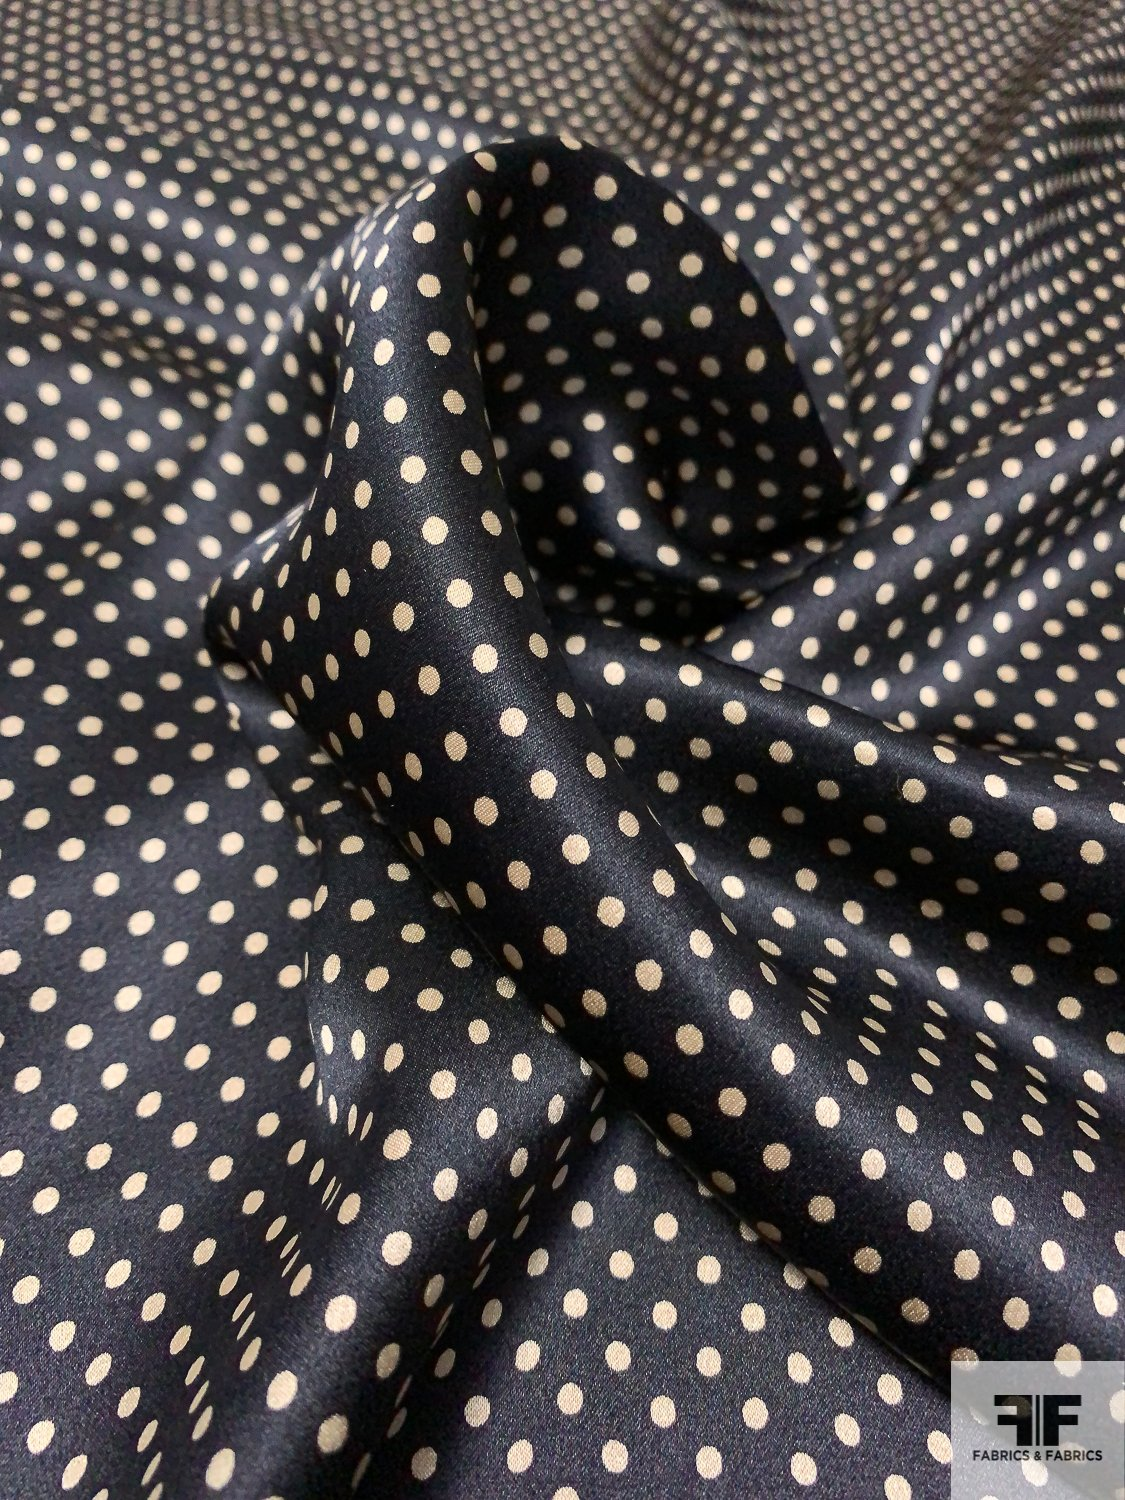 Pin Dot Printed Silk Charmeuse - Black / Beige